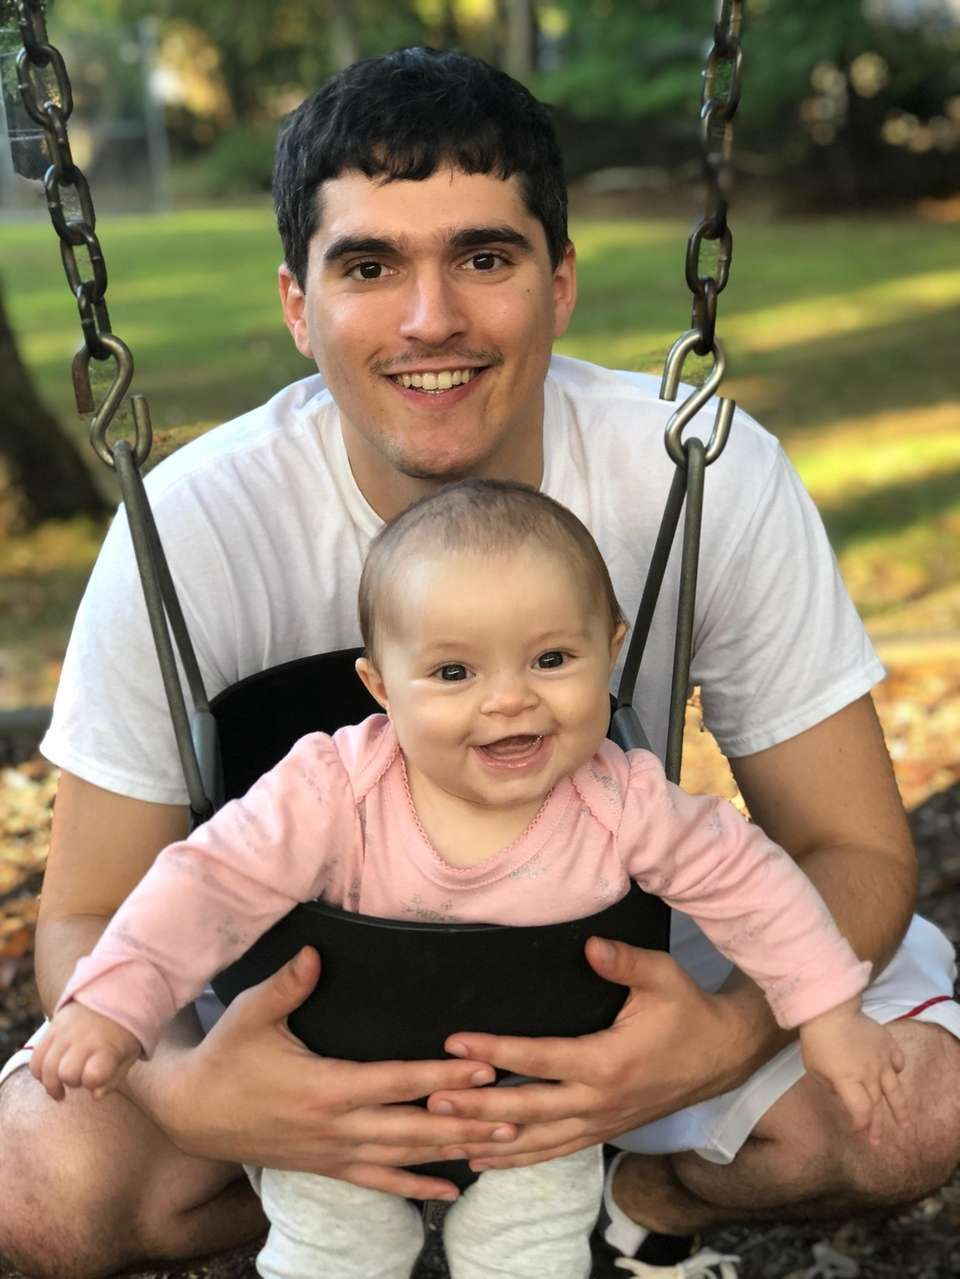 Charles Demaio and his daughter Blakely DeMaio playing